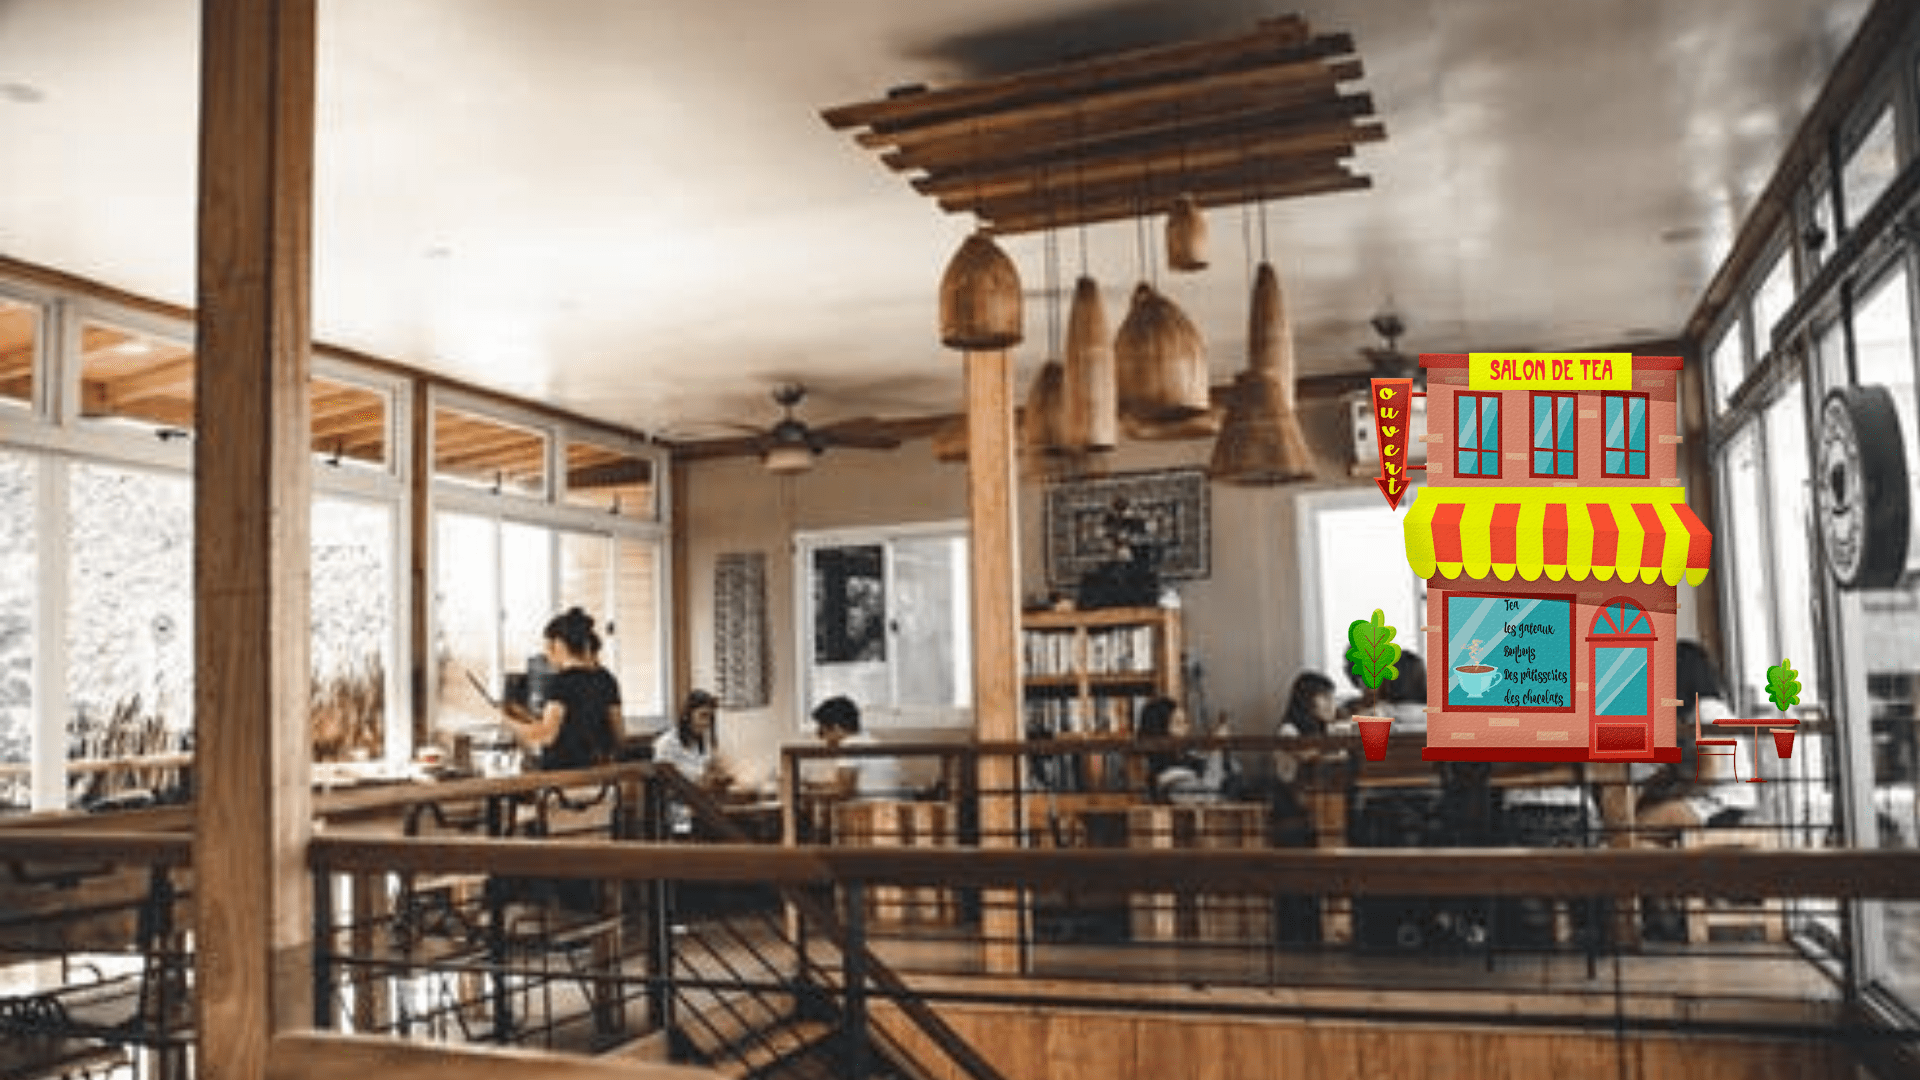 COVID 19 Reopening Checklist: Prepare Your Restaurant to Welcome Back Dine-in Guests